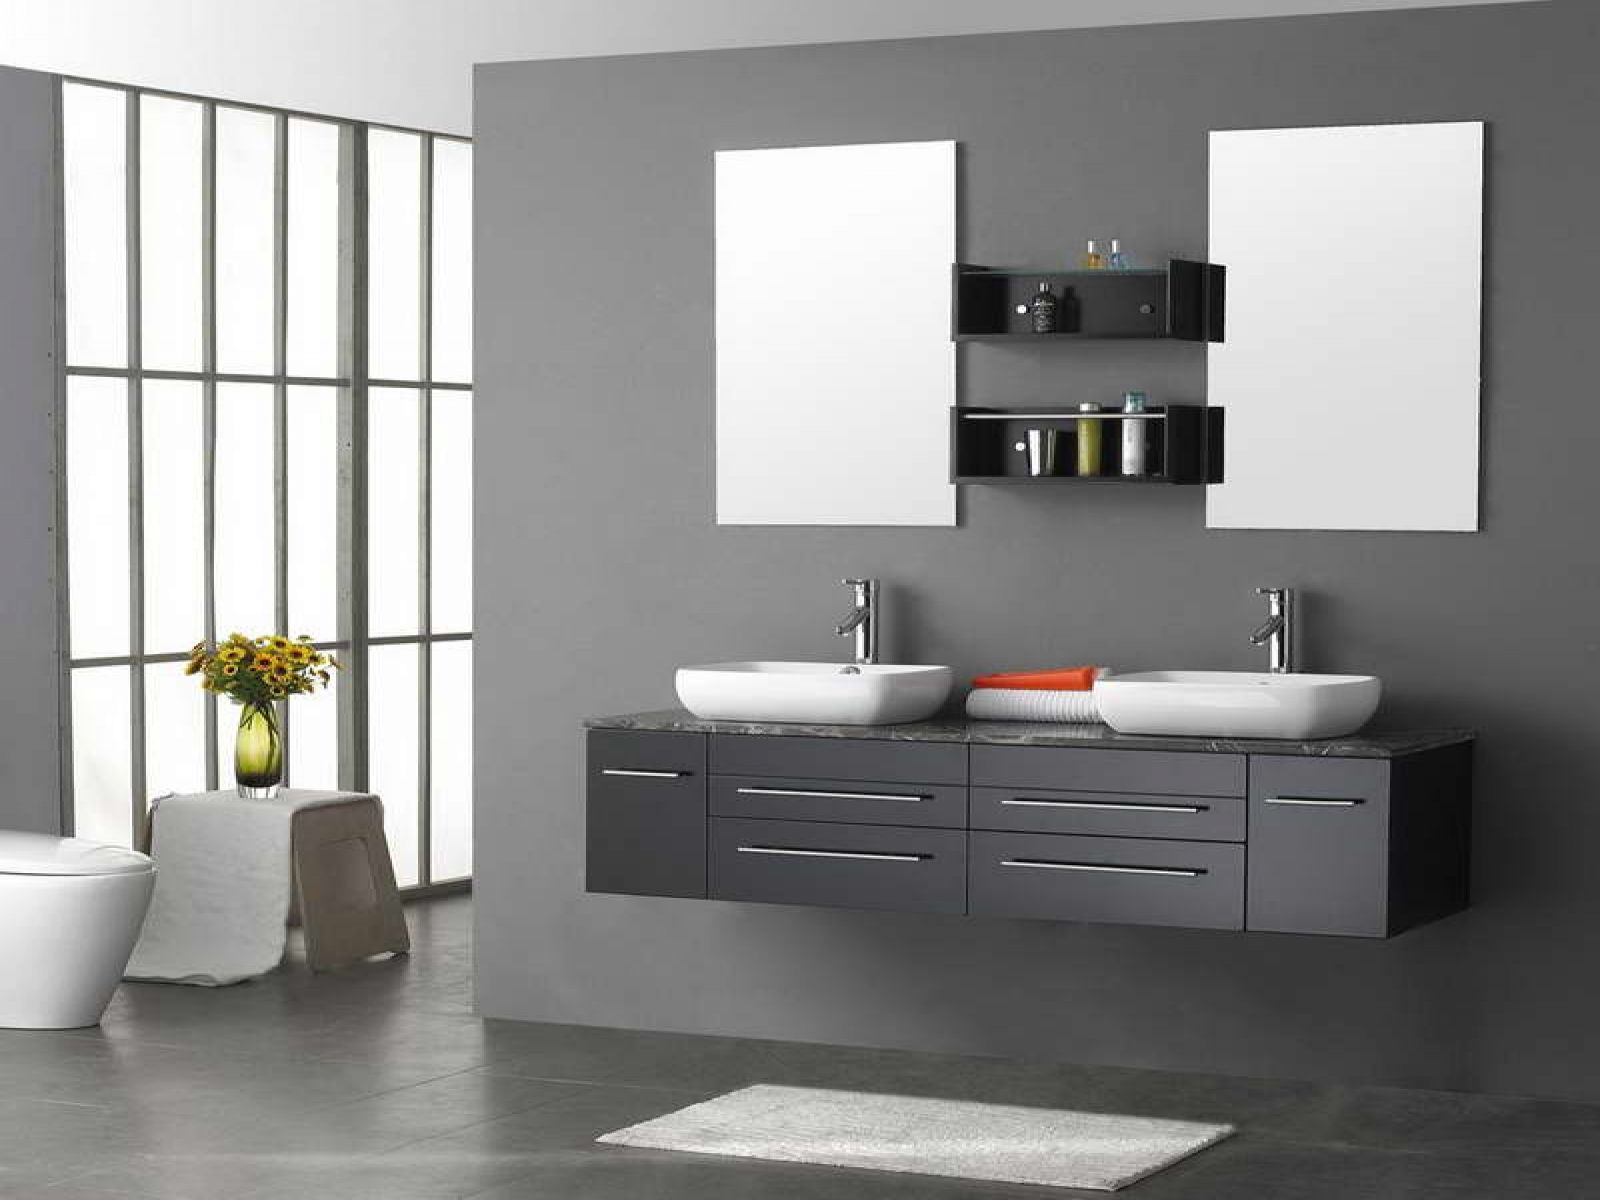 divine floating vanity with double sink added wall mount bathroom shelves beside square mirror hang on